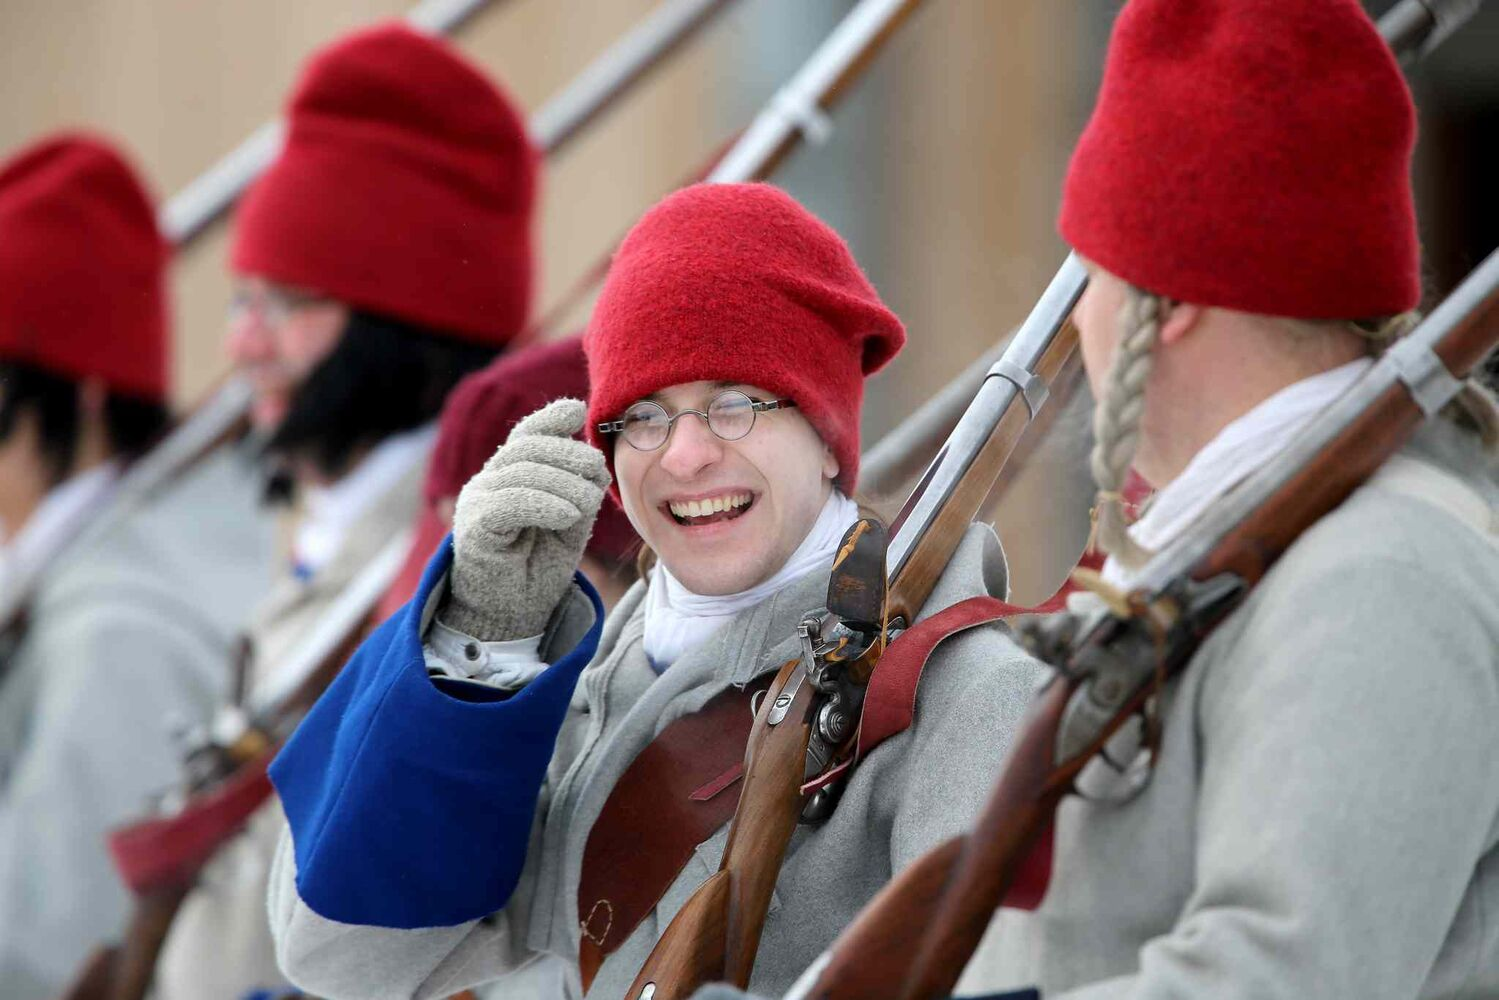 Events at the Festival du Voyageur on Sunday included a historical reenactment between la Compagnie de La Verendrye and The Forces of Lord Selkirk